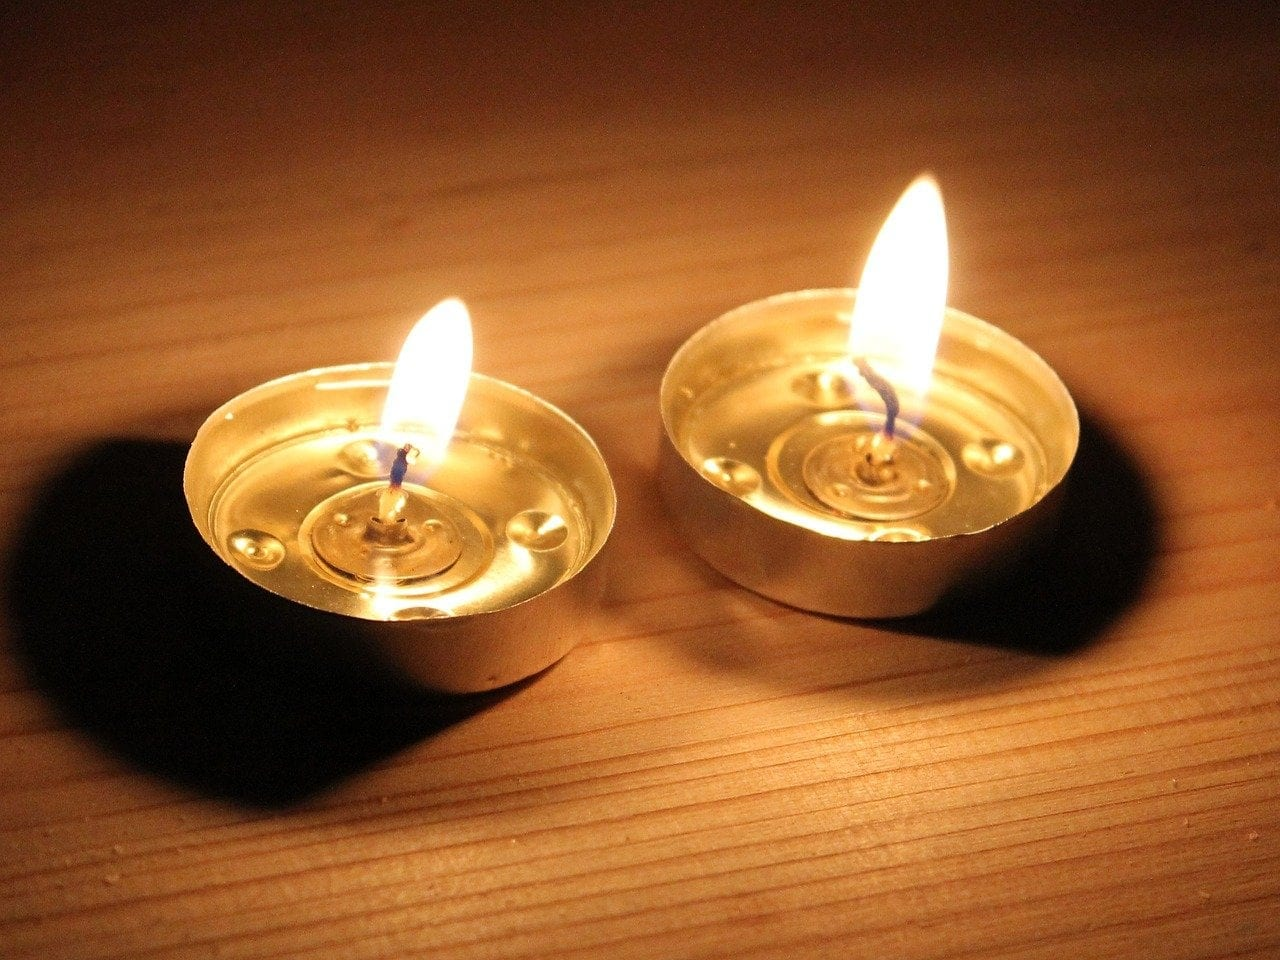 The mitzvah of lighting Shabbat candles